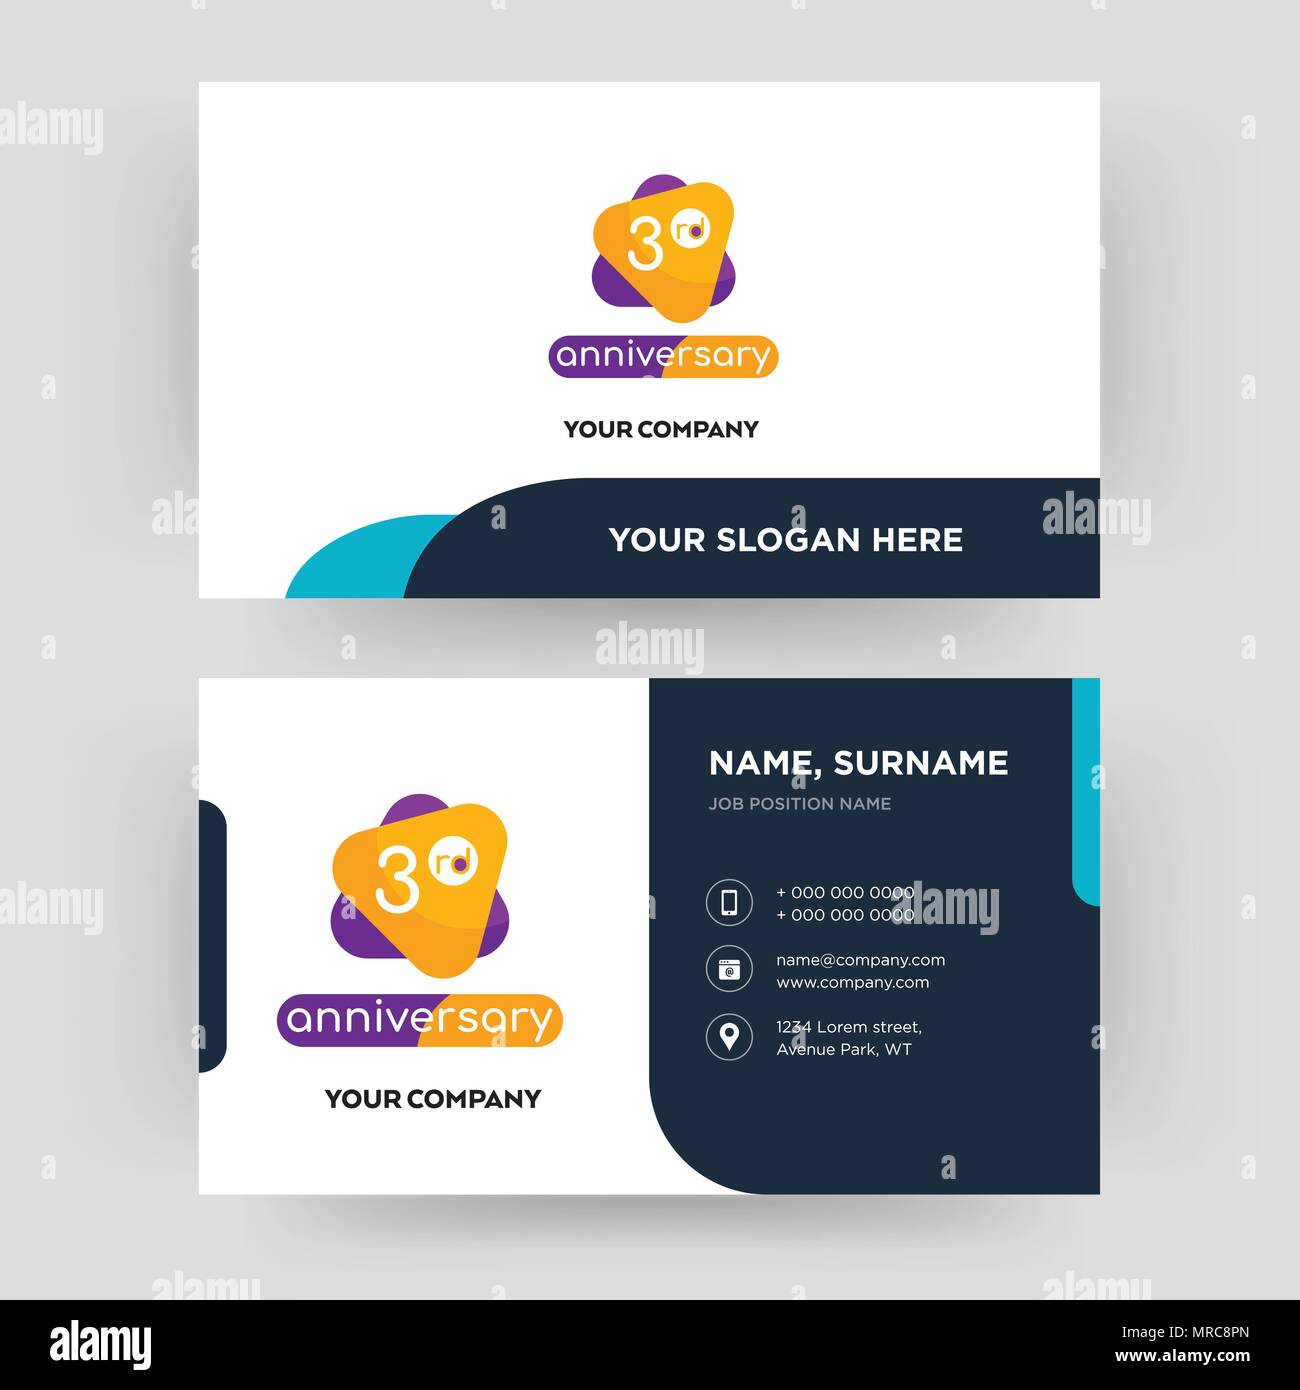 3rd Anniversary Business Card Design Template Visiting For